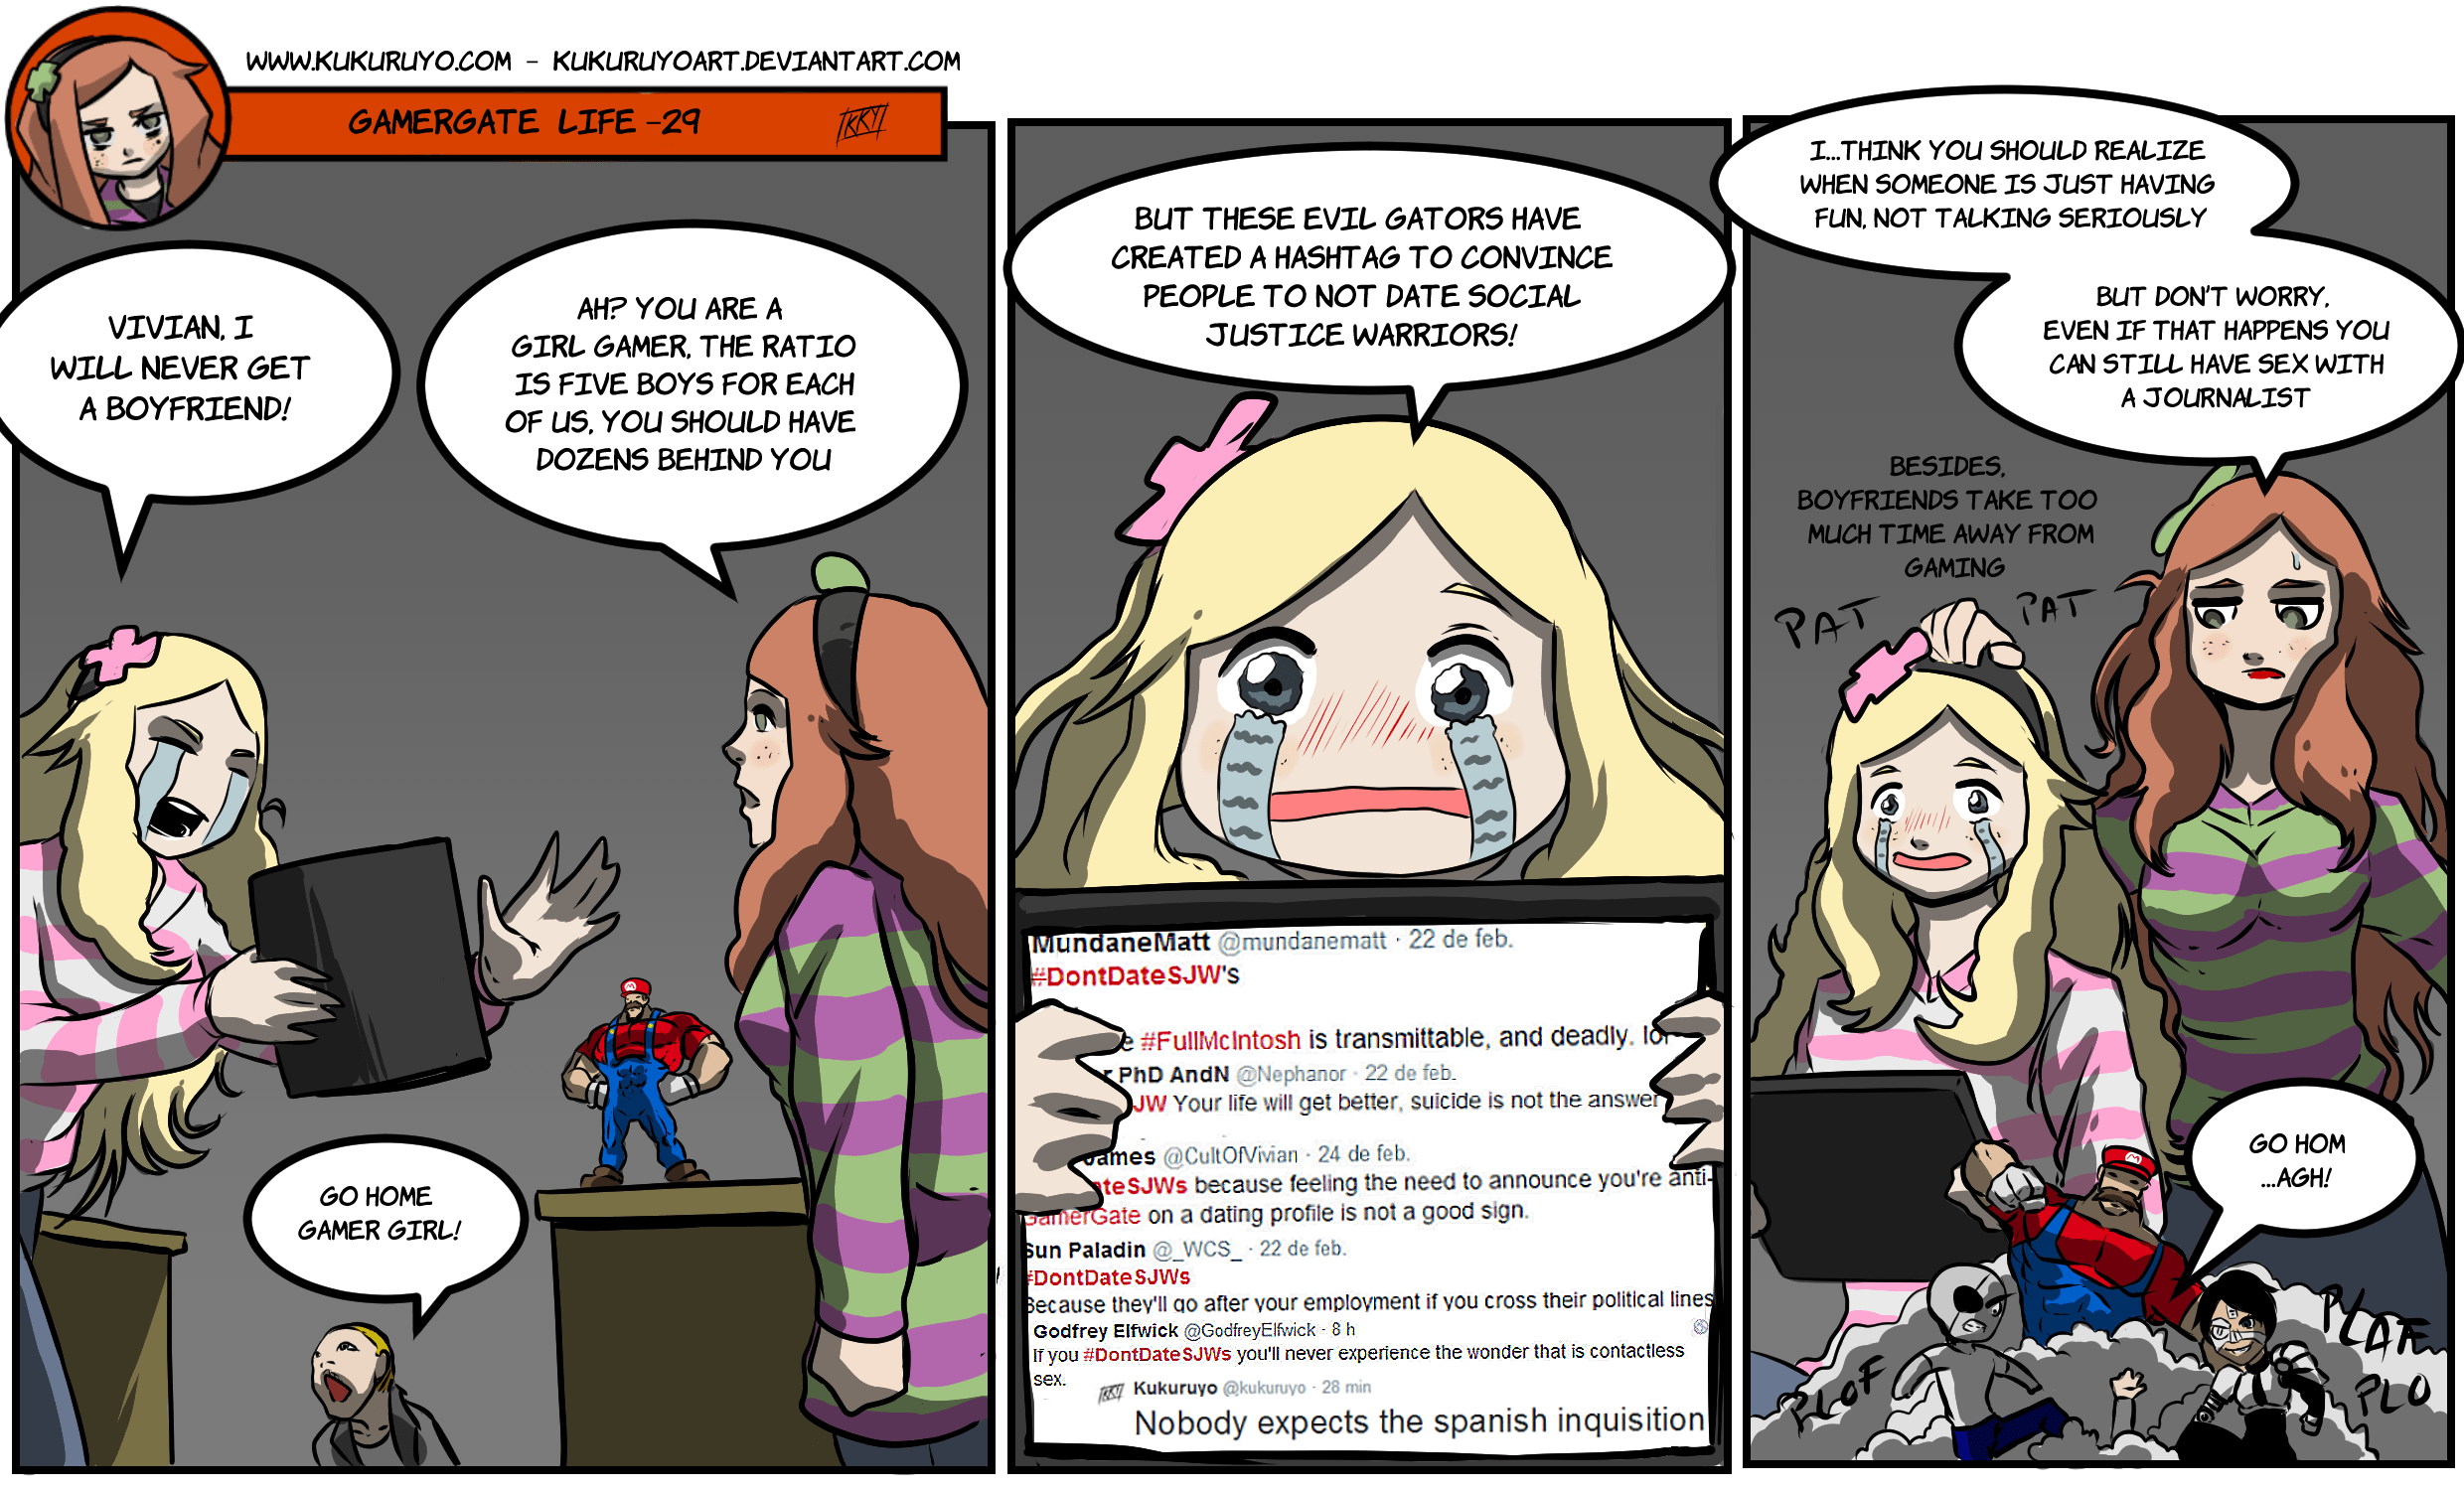 Gamergate life 29 (english)